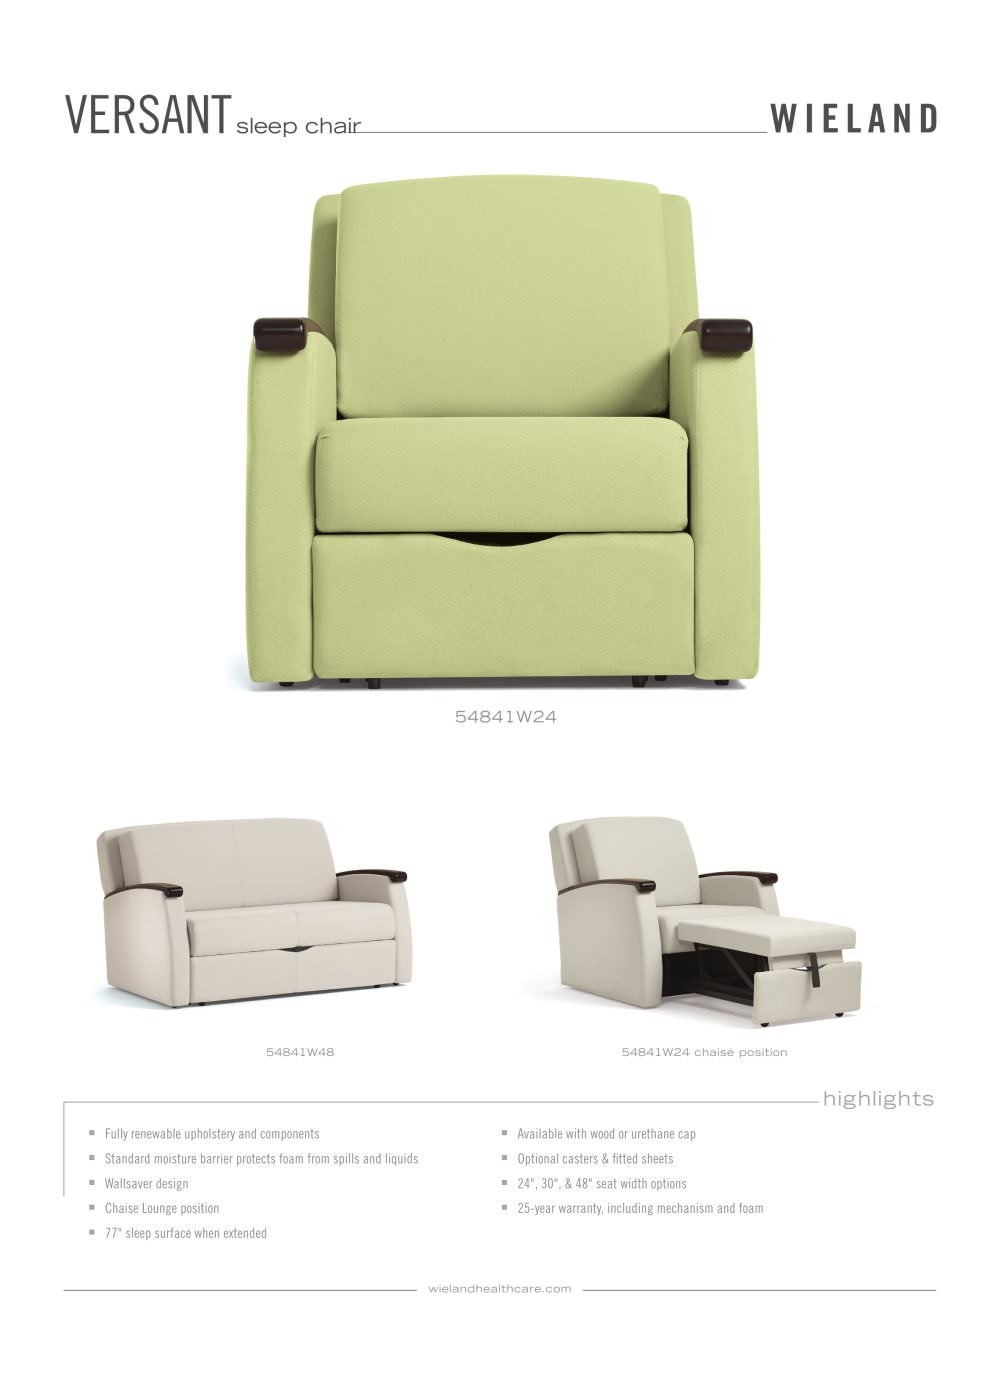 versant sleep chair 1 2 pages